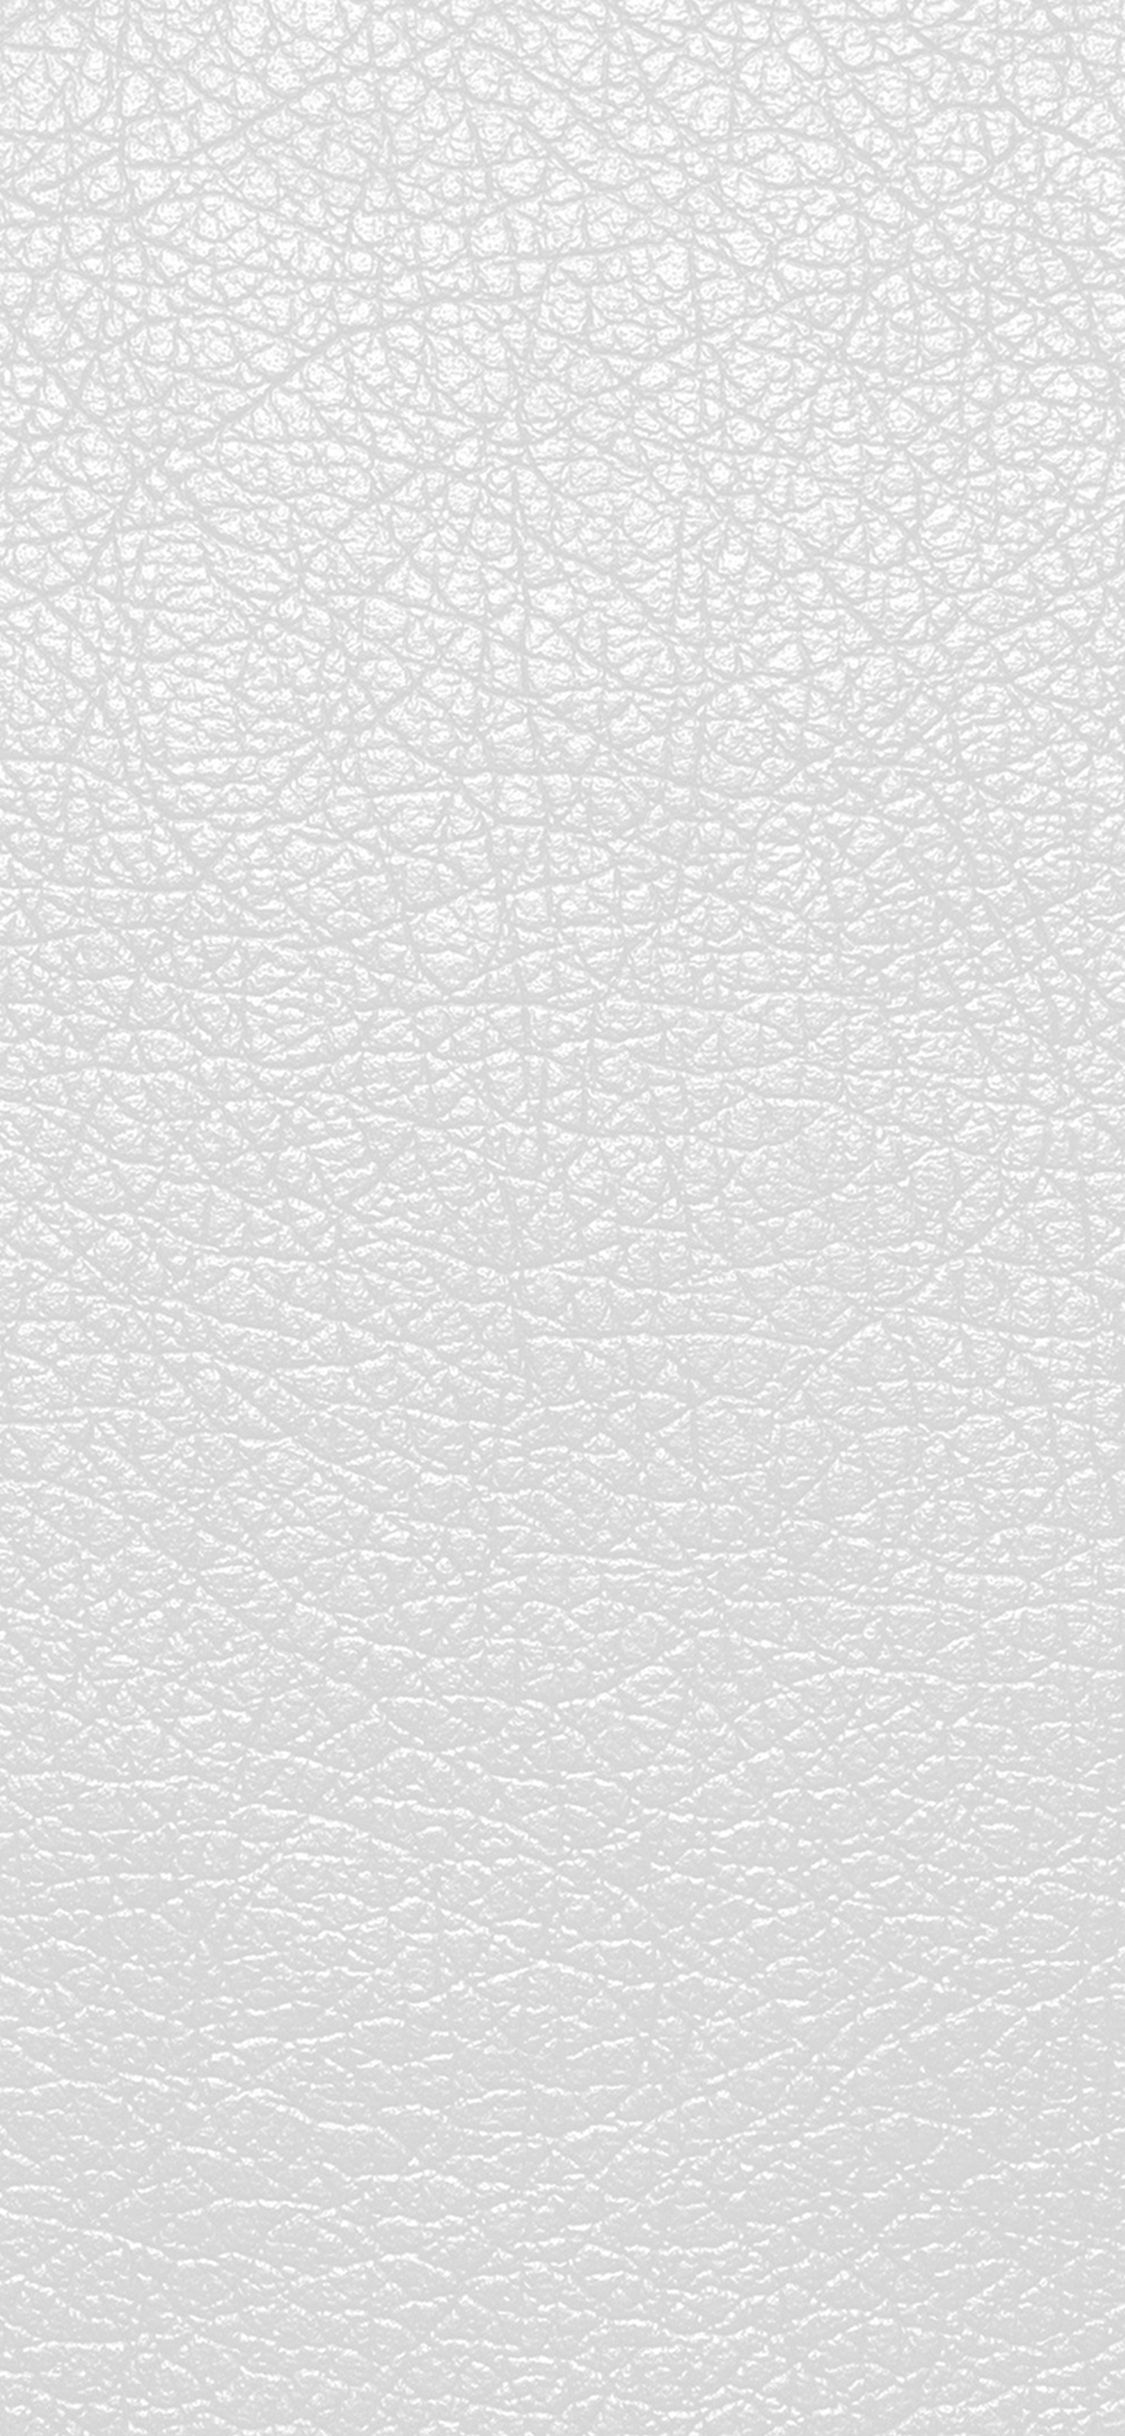 Texture Skin White Leather Pattern Iphone X Wallpaper Iphone X